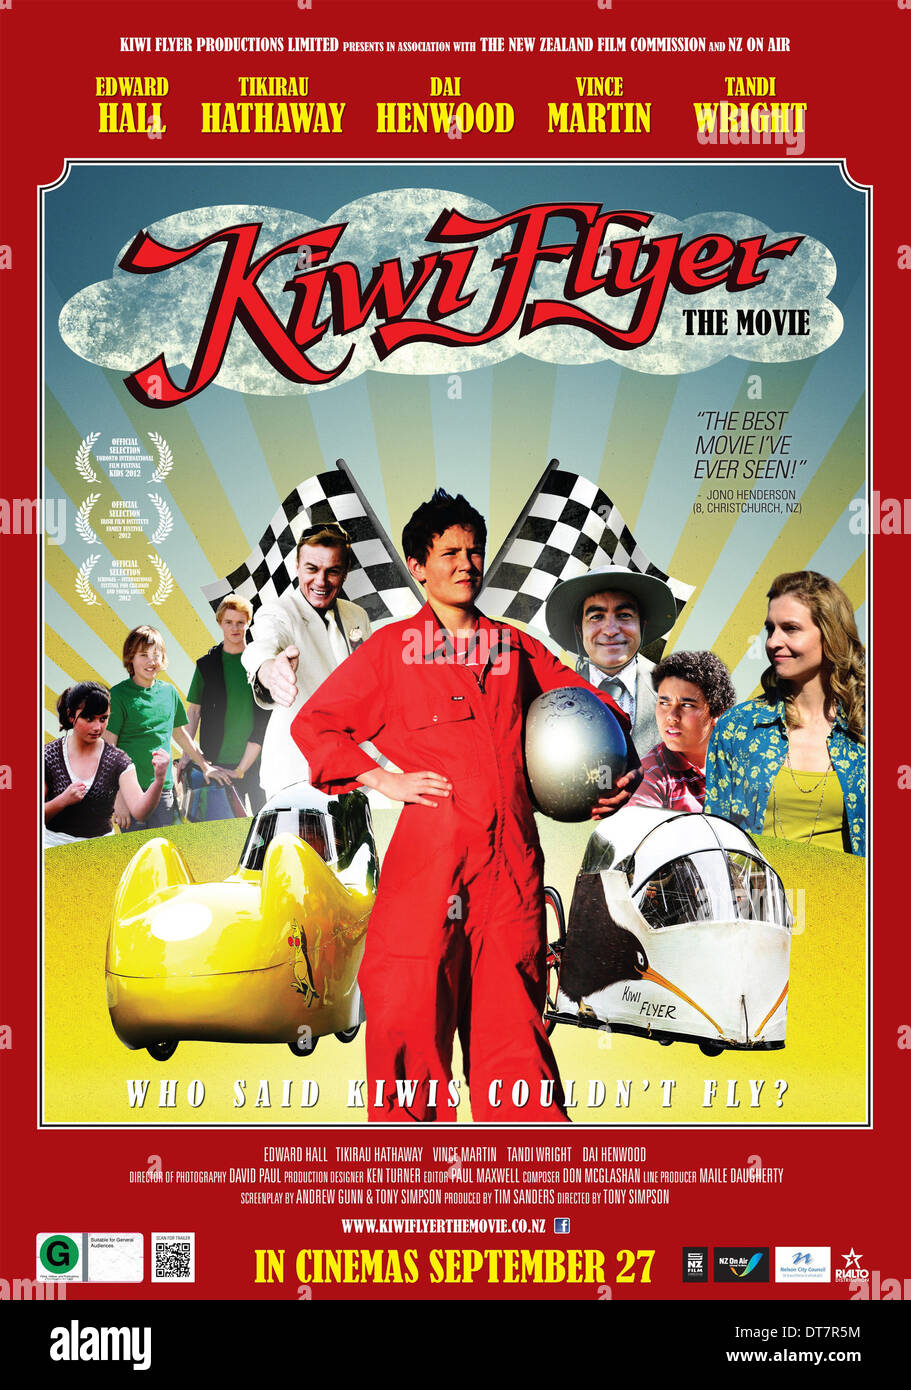 EDWARD HALL POSTER KIWI FLYER (2012) - Stock Image